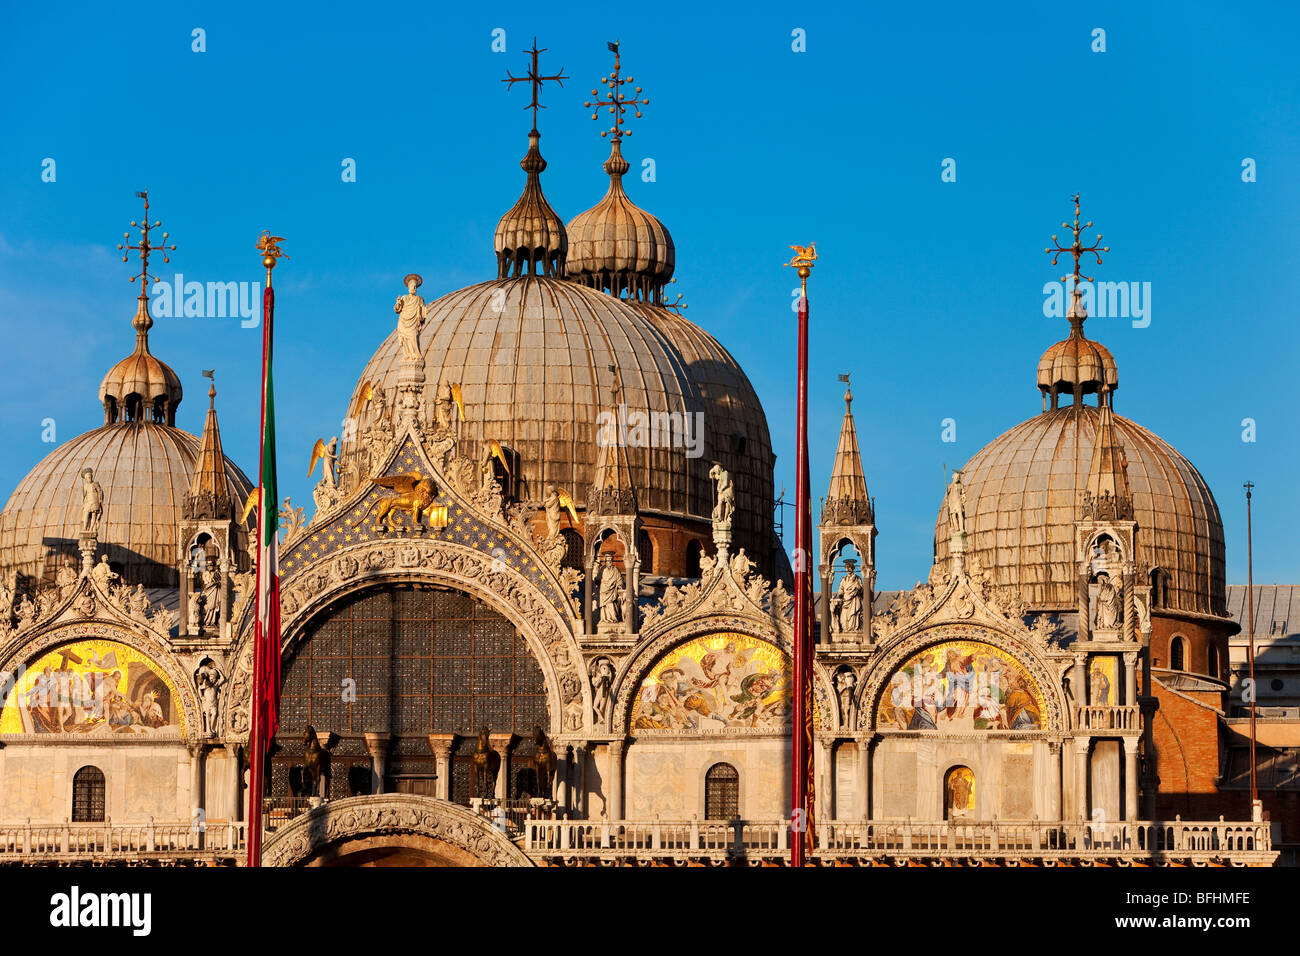 Warm glow of sunset on the detailed architecture of the Basilica San Marco in Venice, Veneto Italy Stock Photo